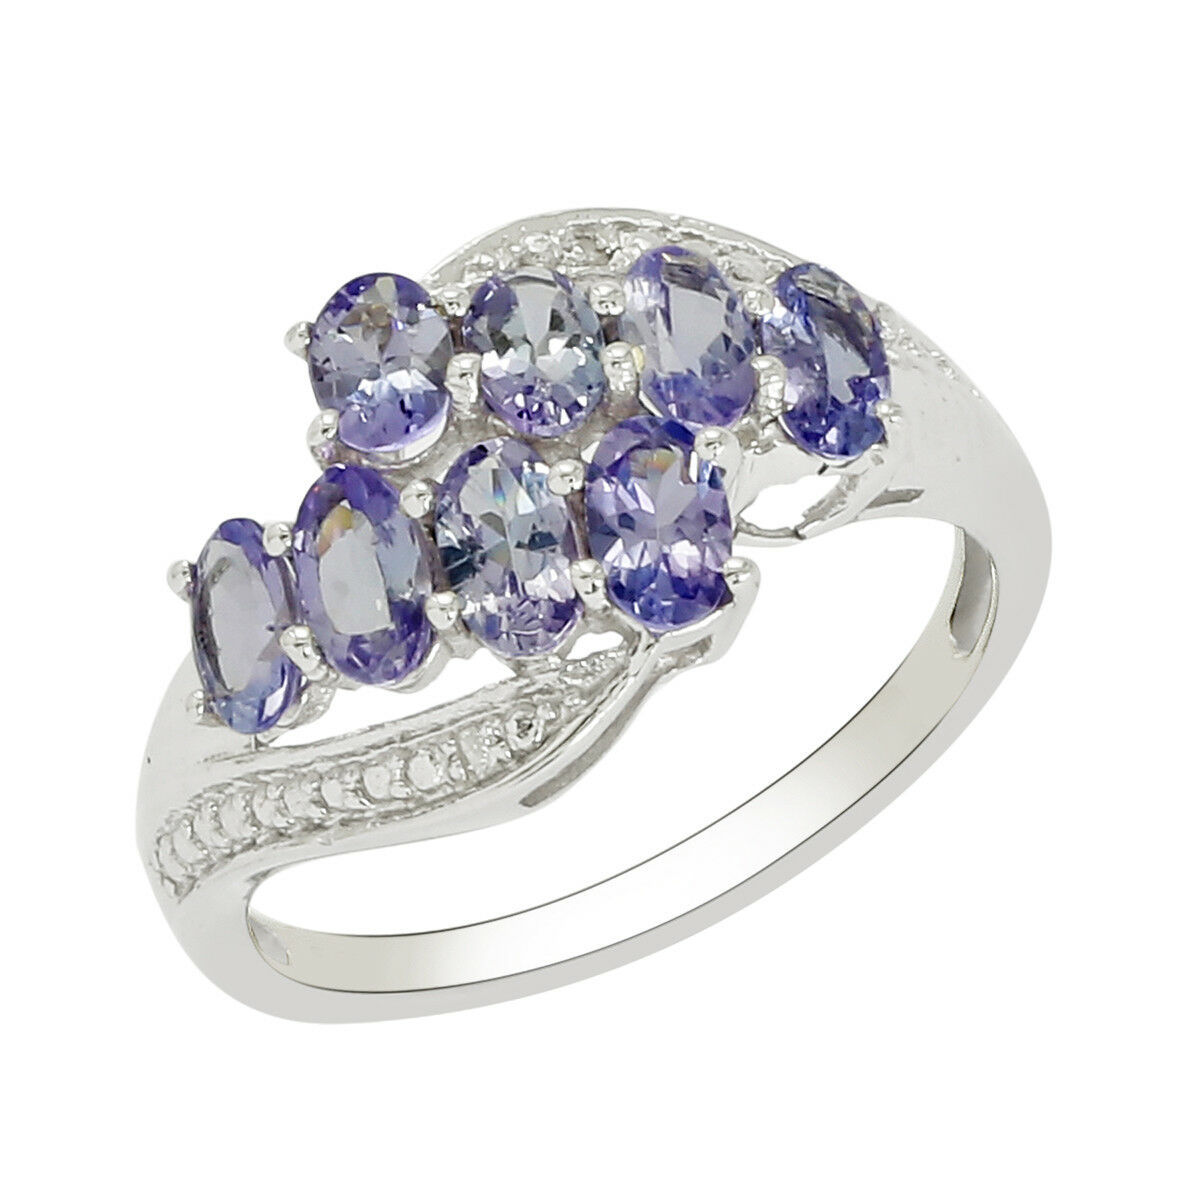 Ladies 925 Sterling Silver 2.16 Carat Tanzanite Cluster Ring Women's FineJewerly